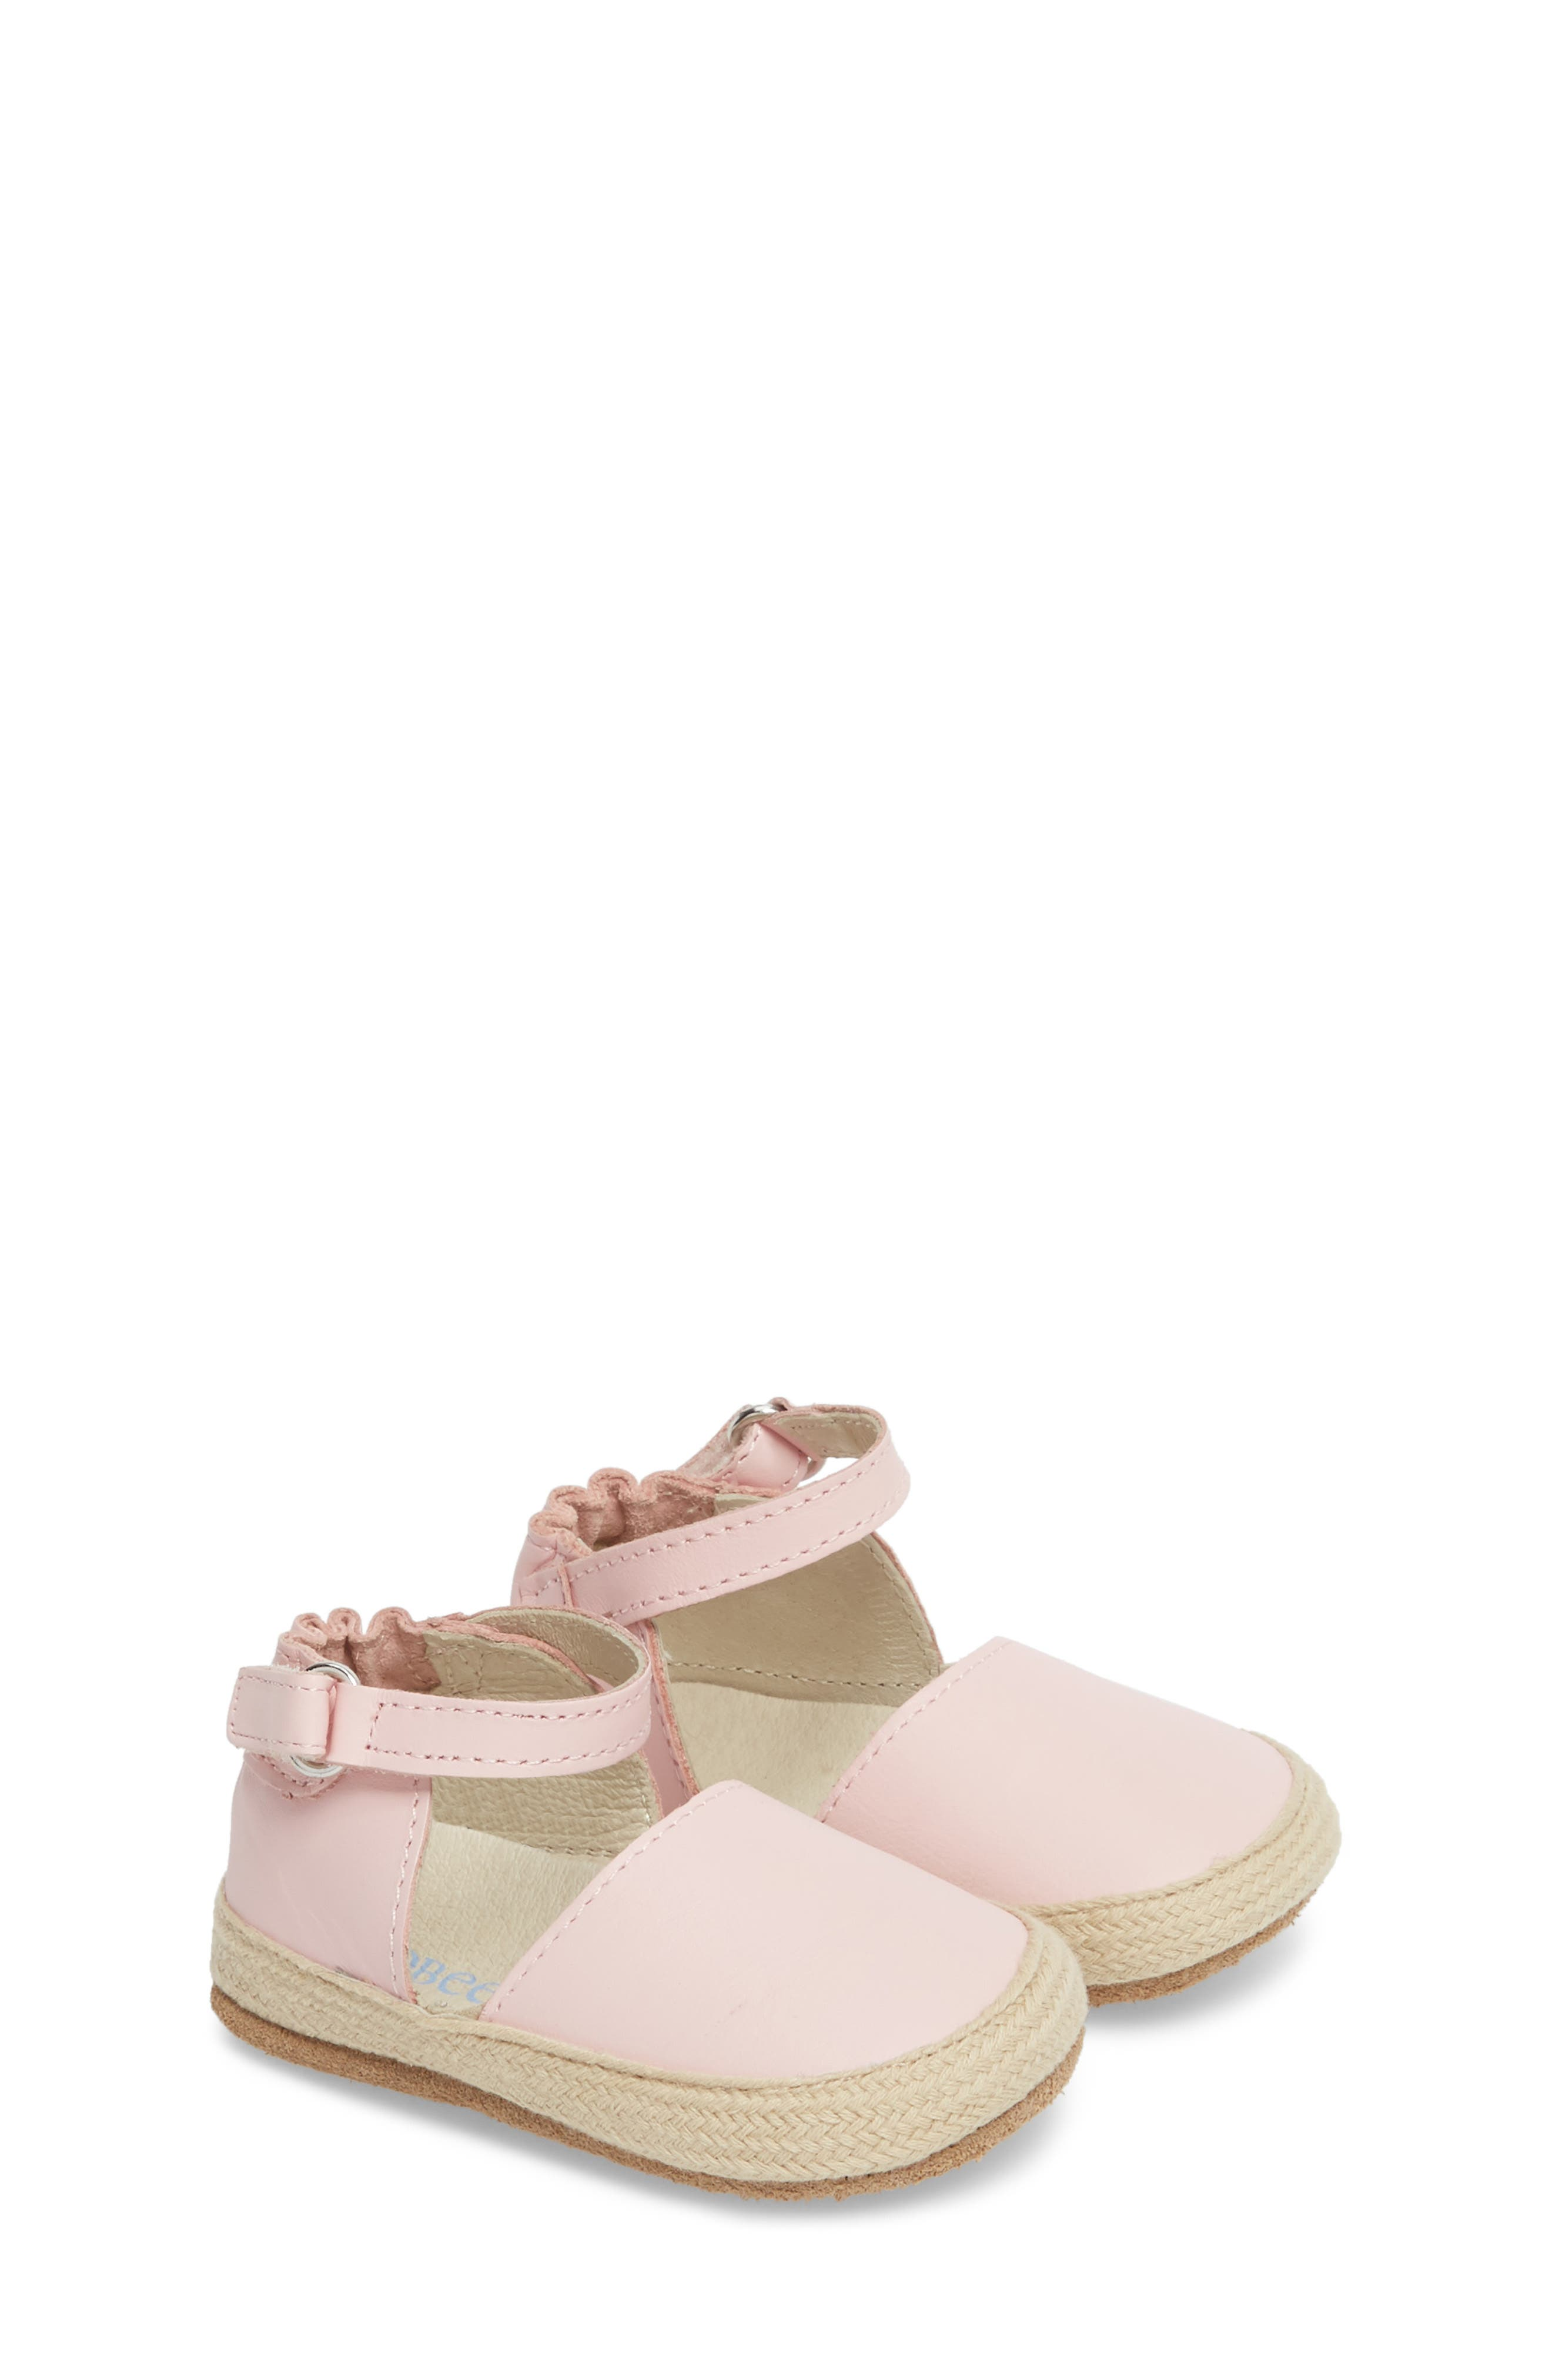 Kelly Soft Sole Espadrille Sandal,                             Main thumbnail 1, color,                             PINK